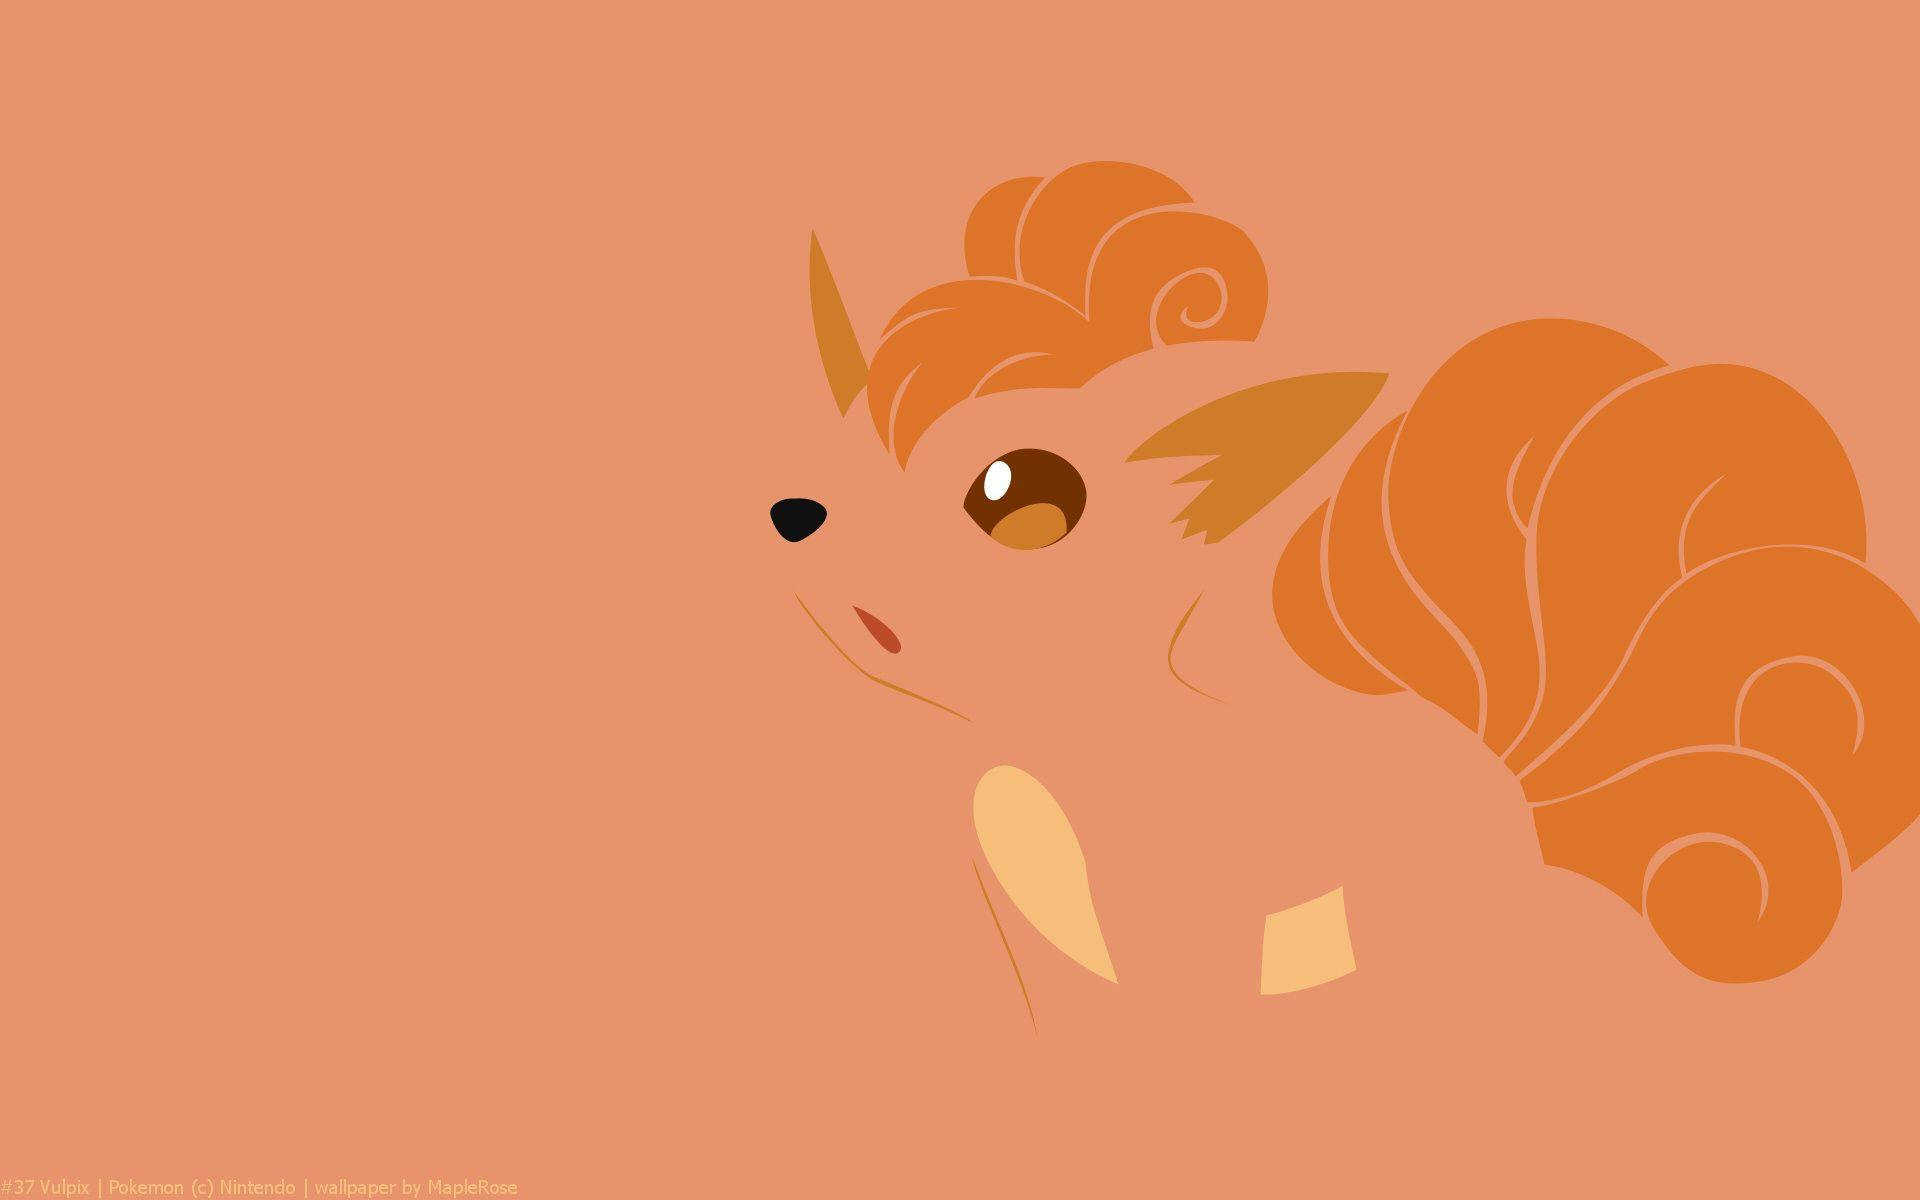 Vulpix Pokemon HD Wallpaper - Free HD wallpapers, Iphone, Samsung ...